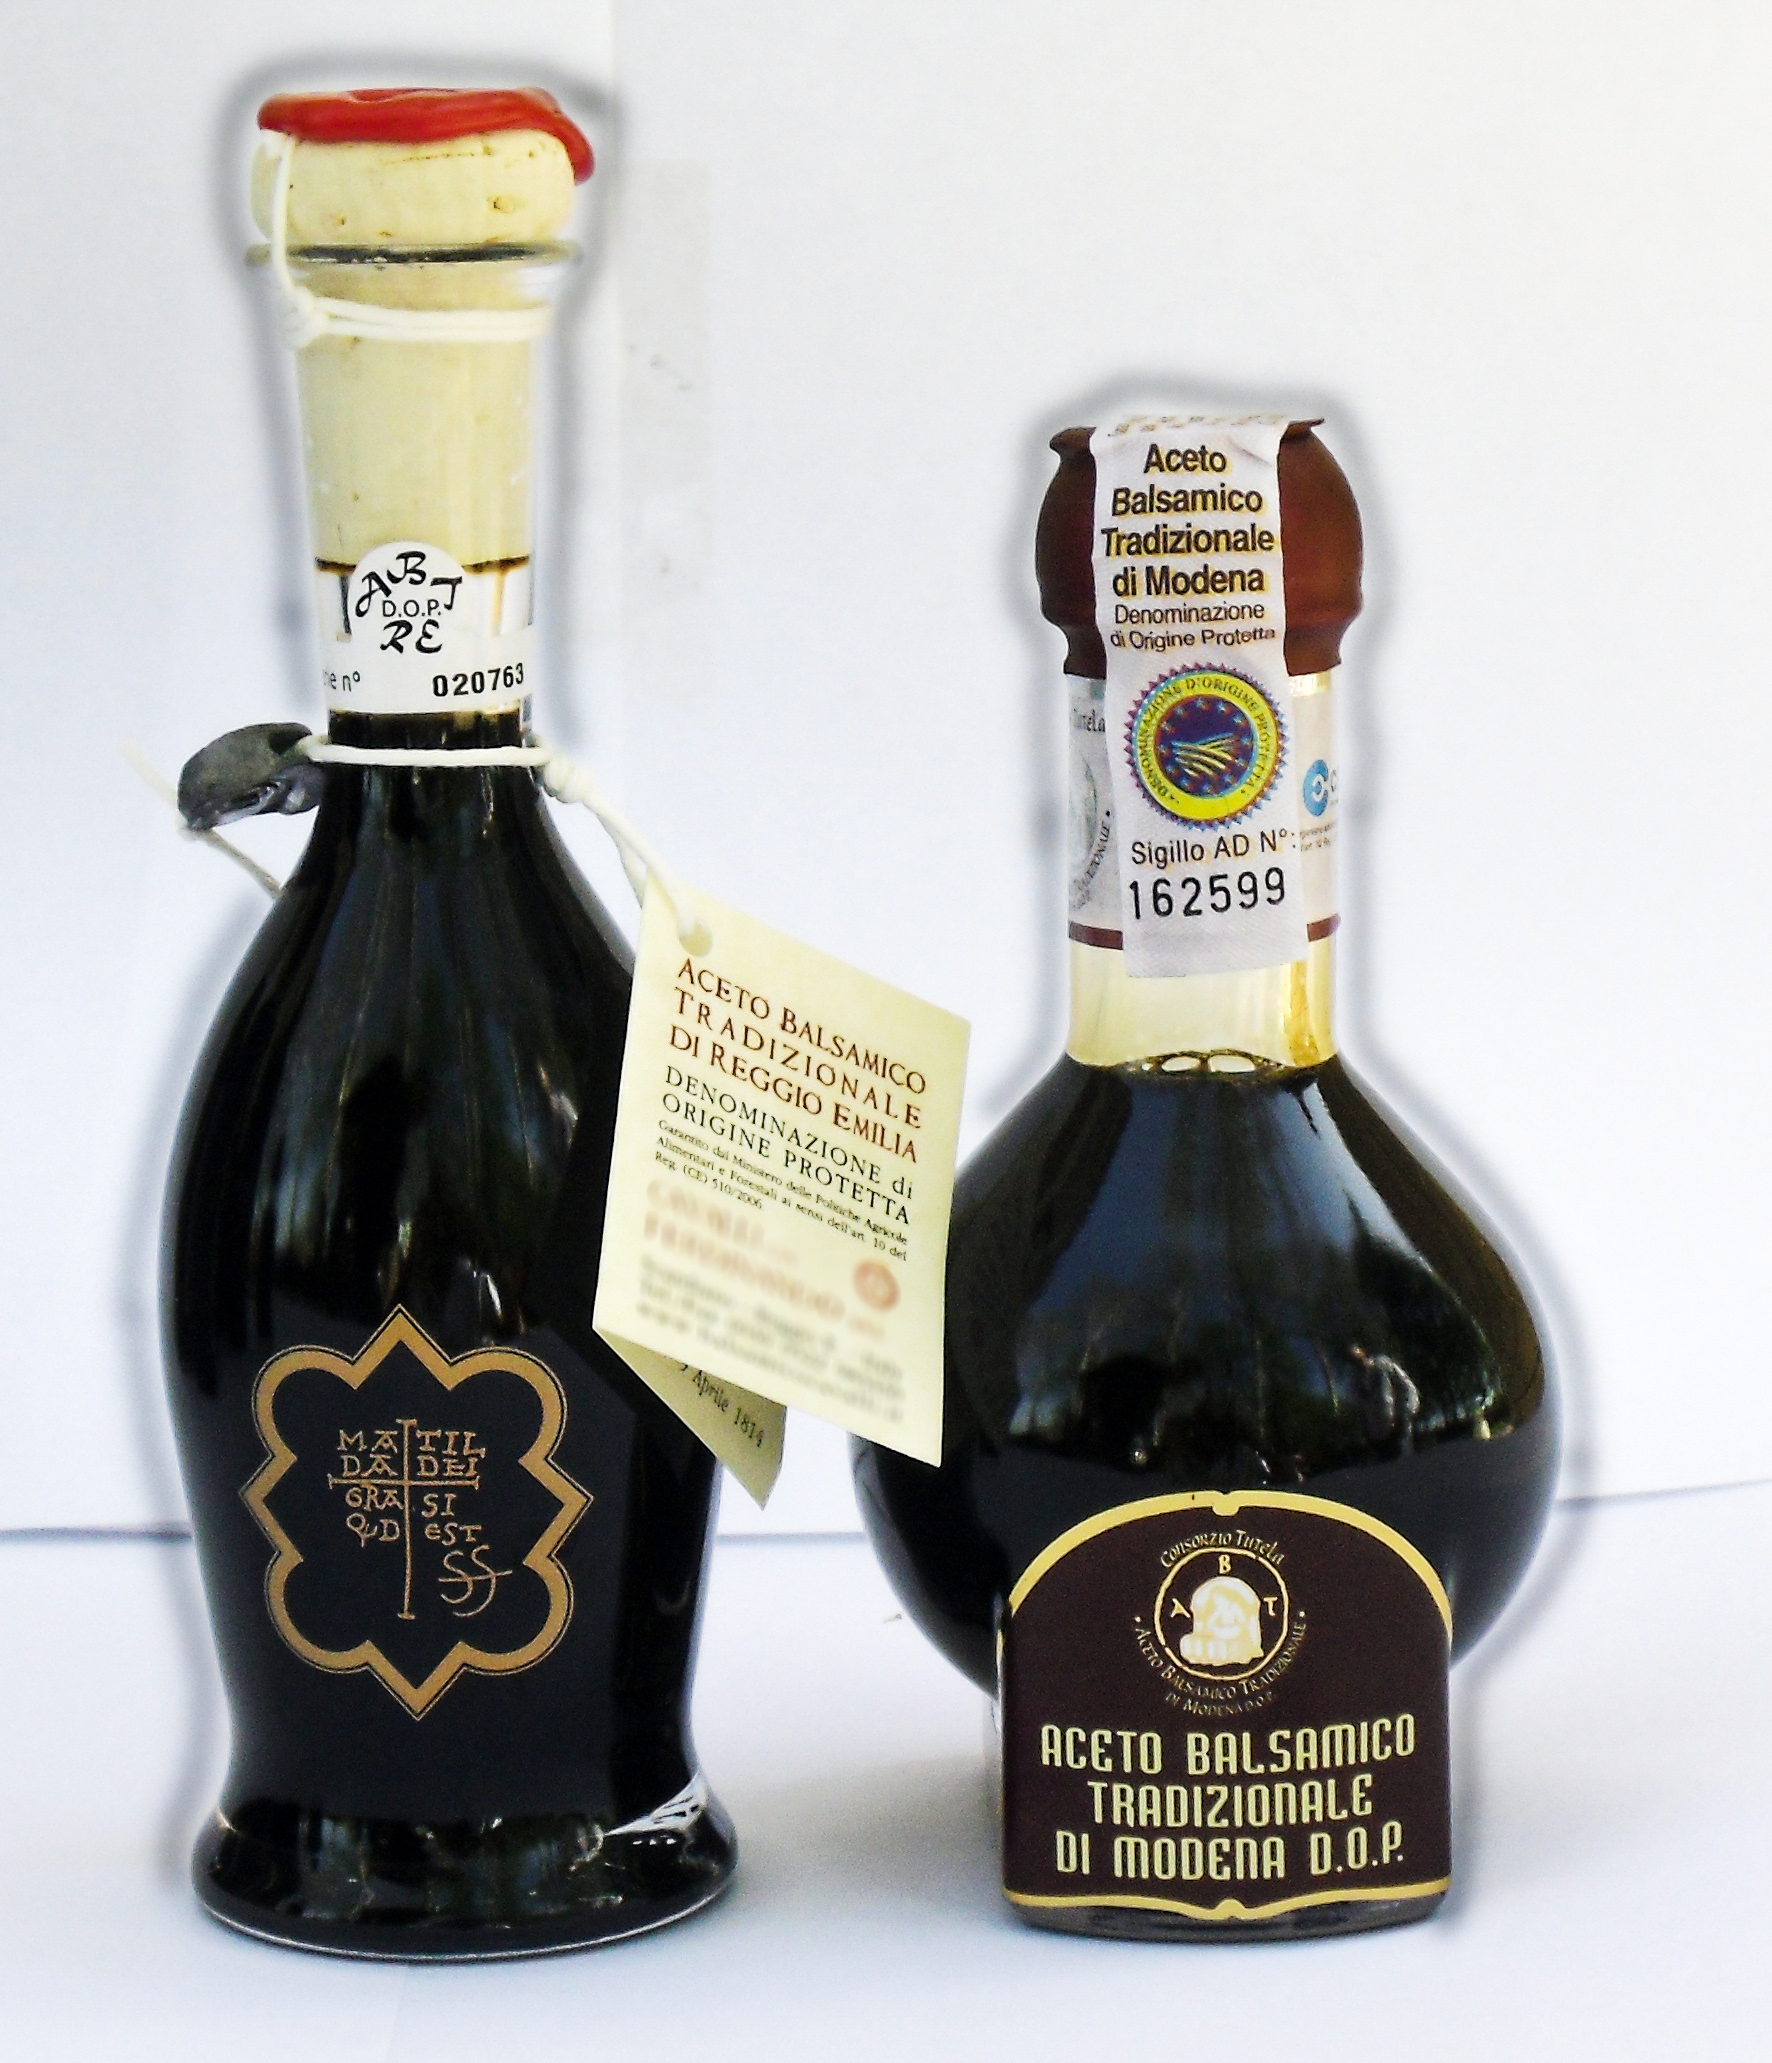 traditional balsamic vinegars of modena (right) and reggio emilia (left).jpg